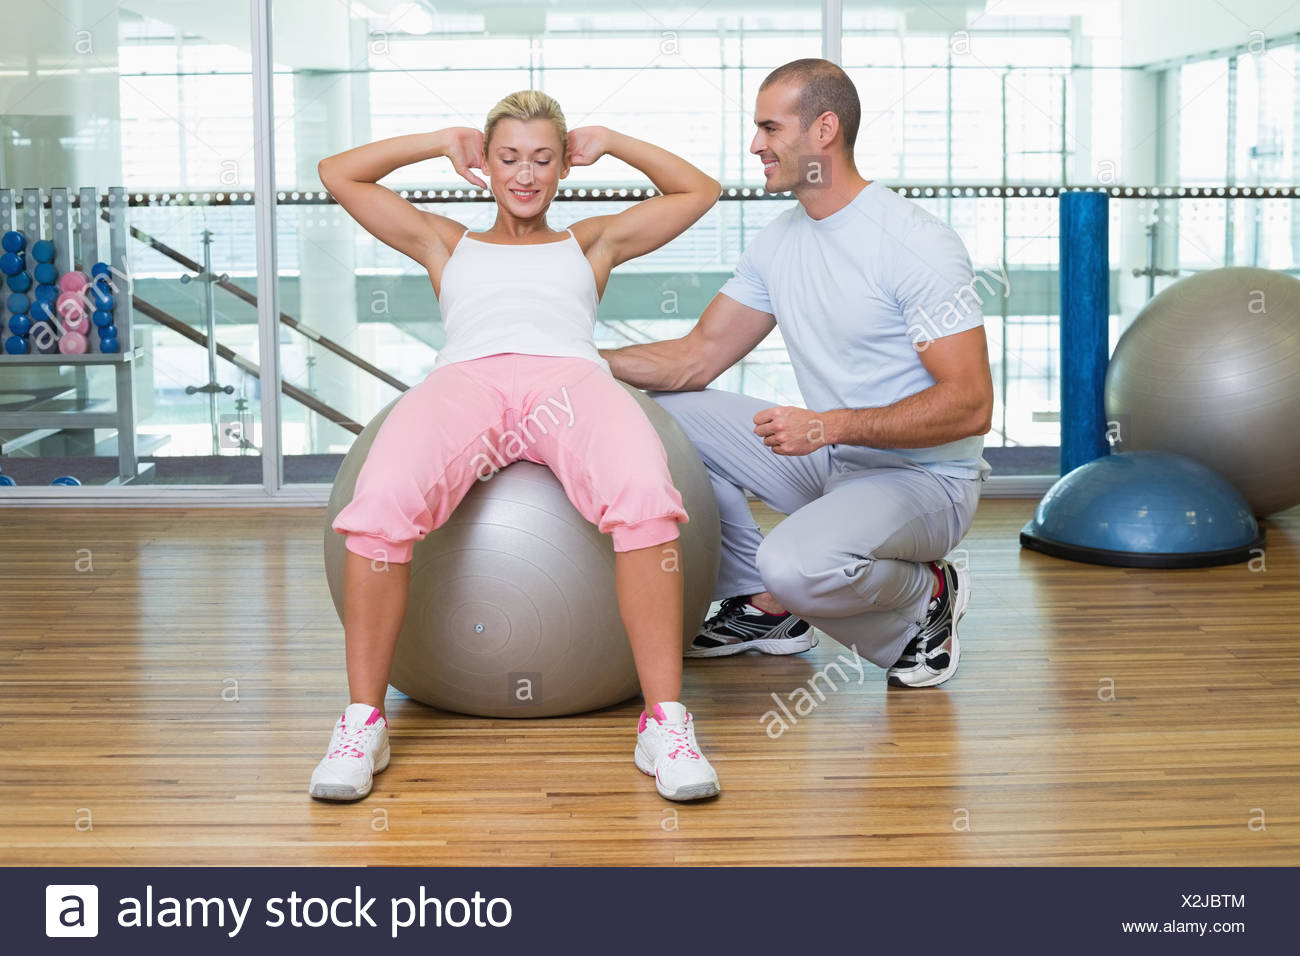 Male trainer assisting woman with abdominal crunches at gym - Stock Image